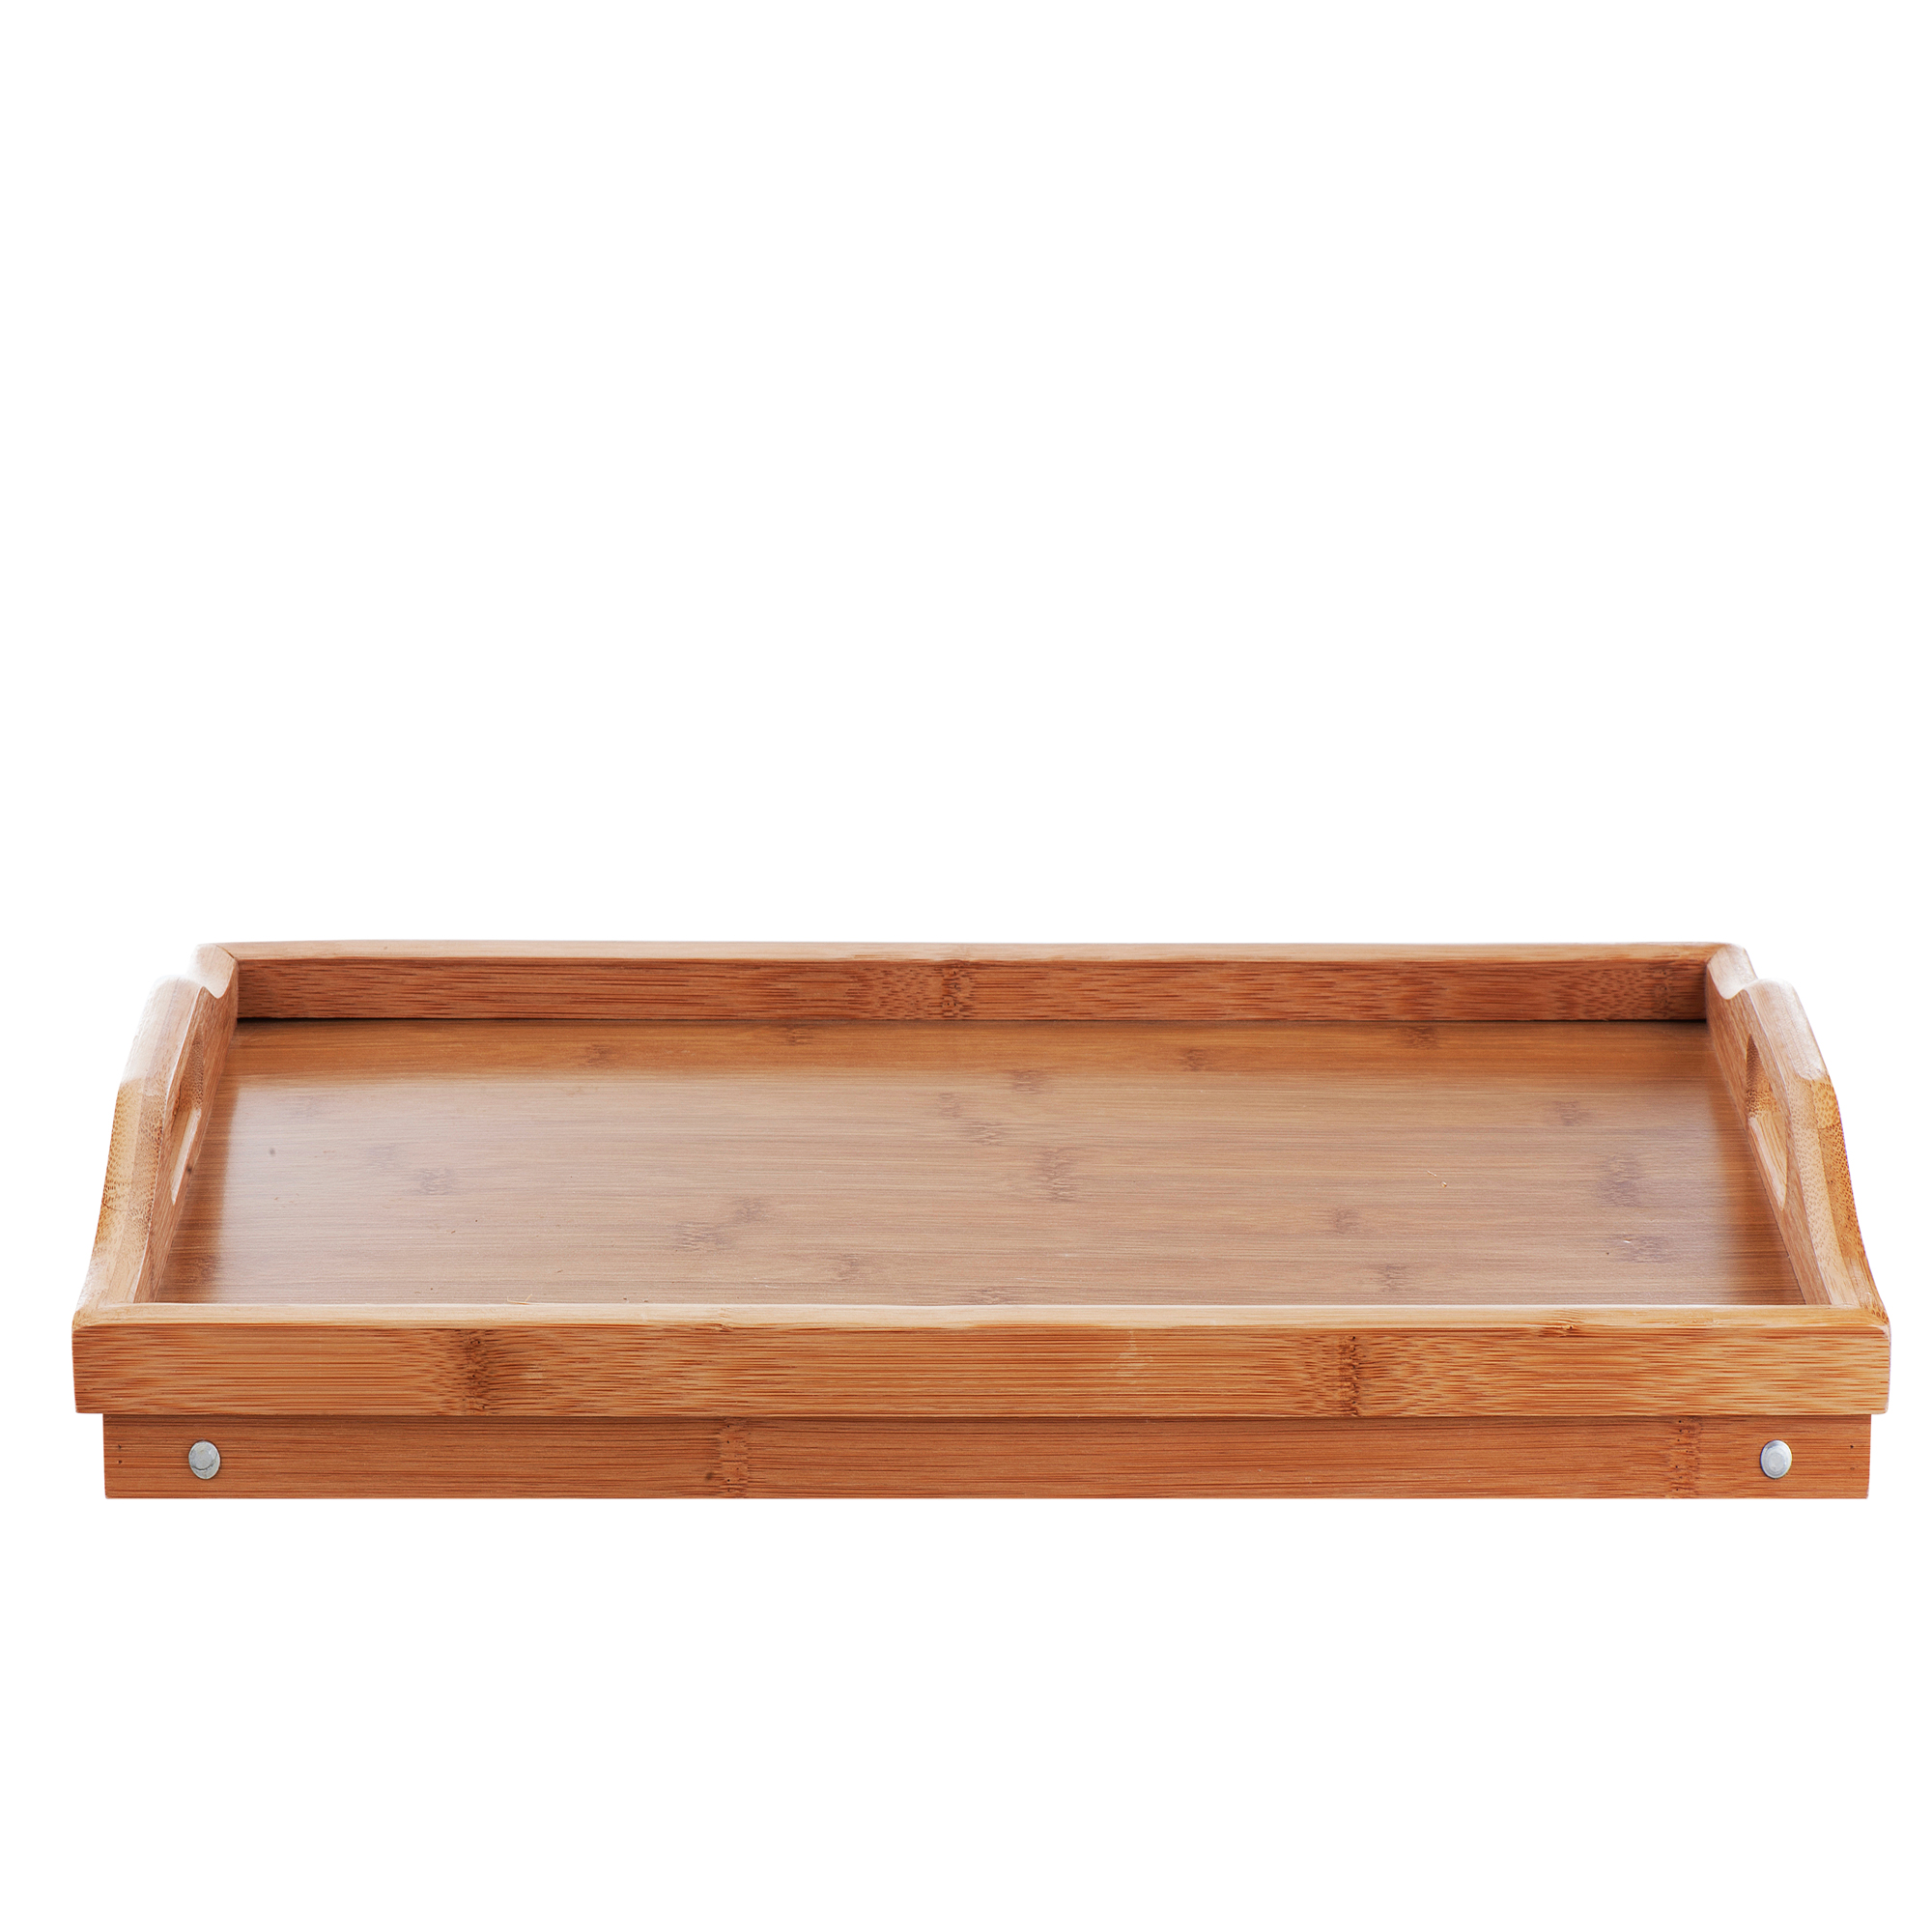 Sentinel Portable Wooden Bamboo Food Serving Breakfast In Bed Lap Tray Folding Legs